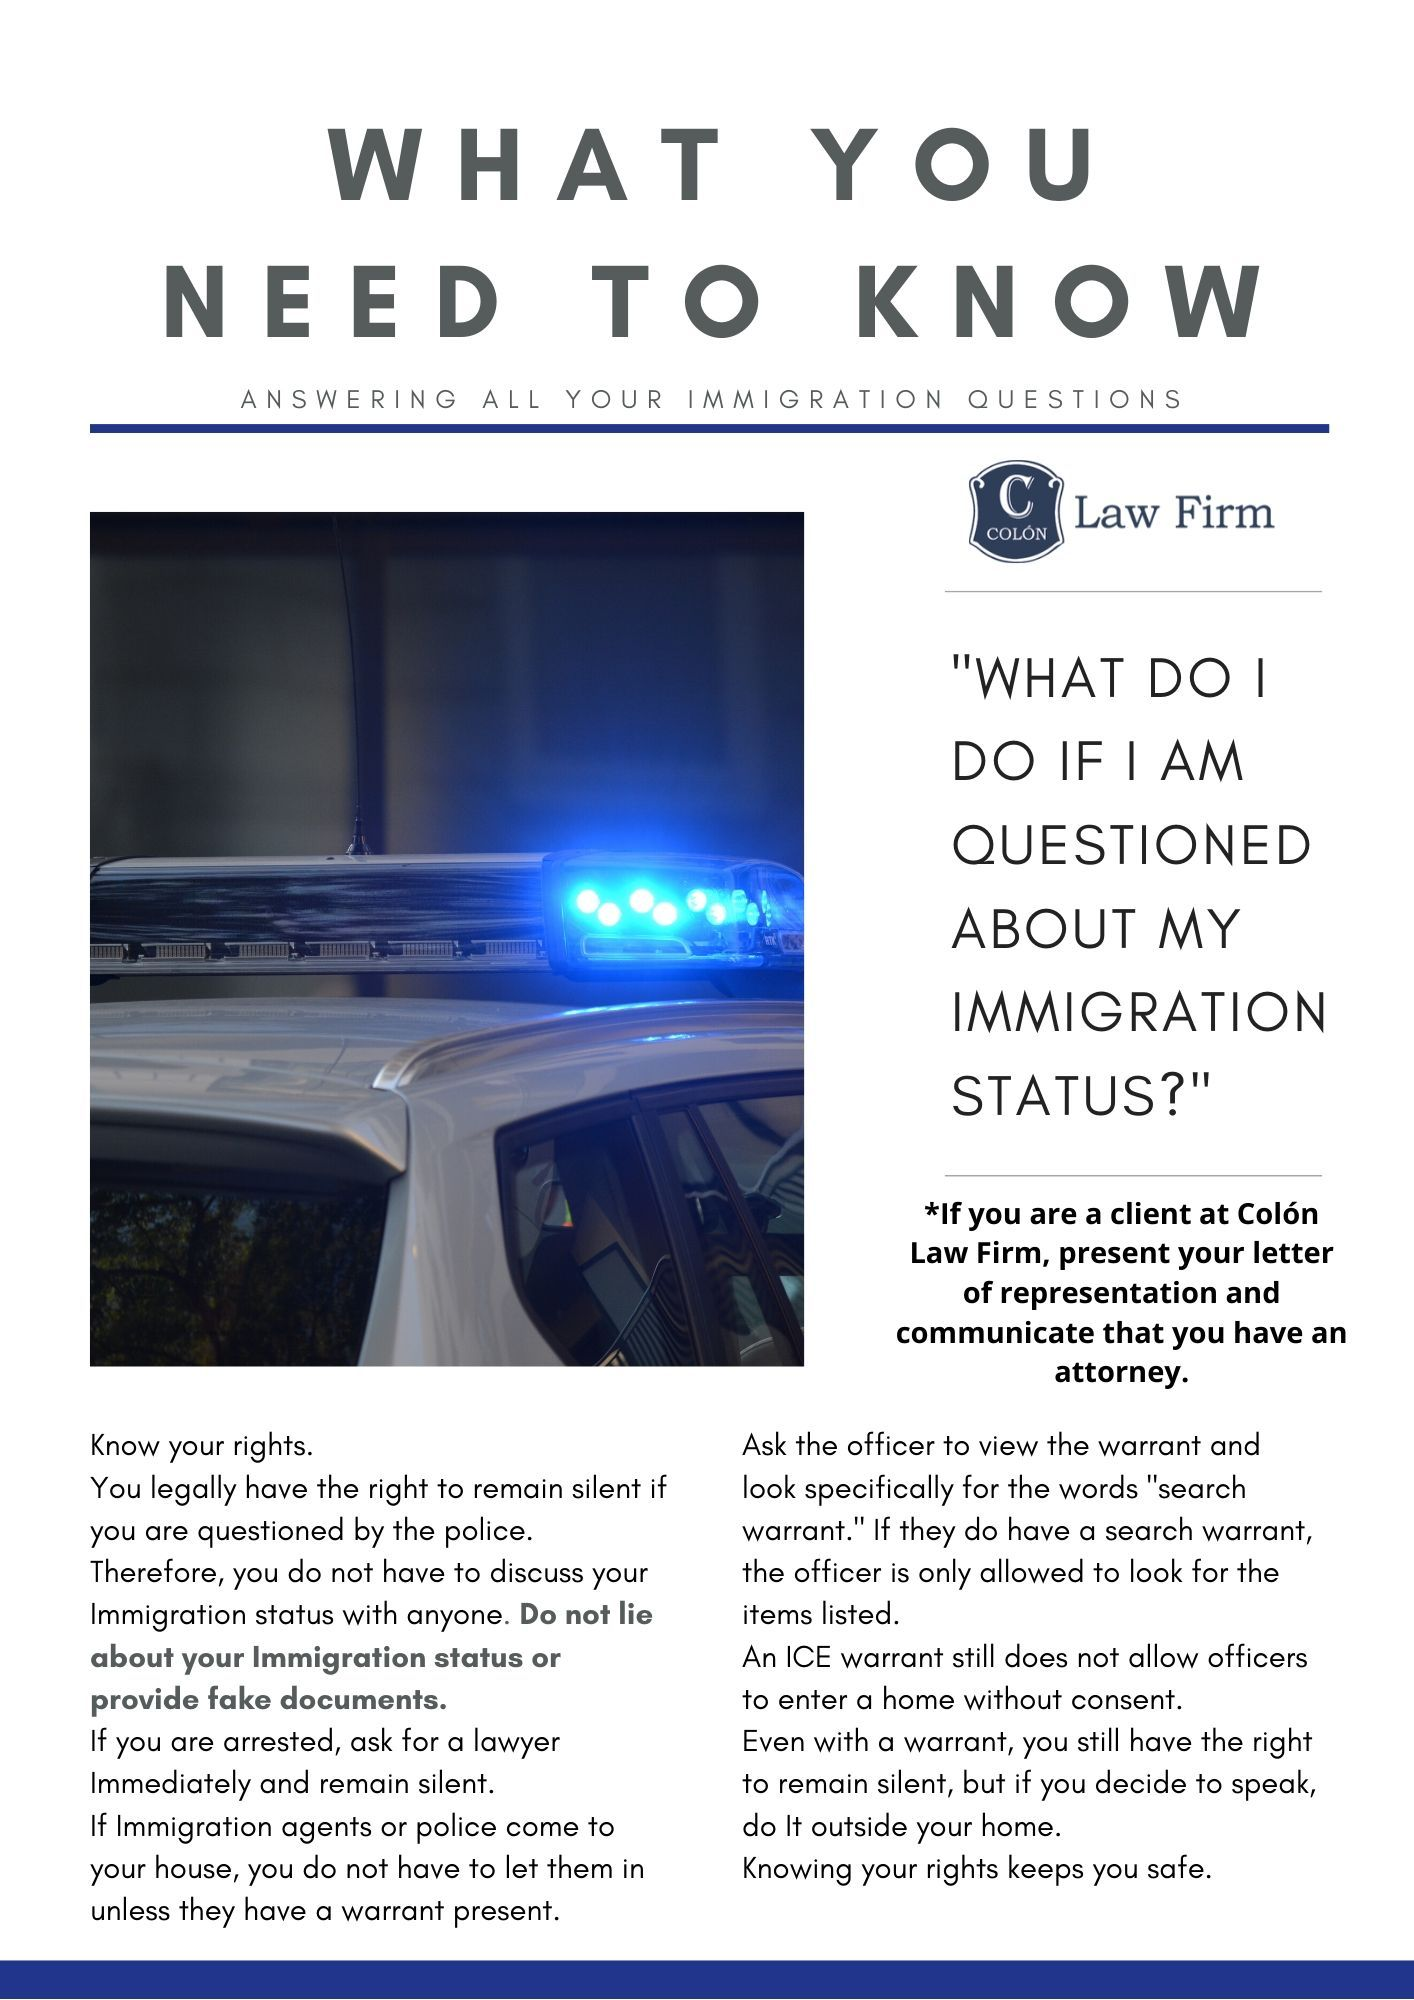 Colon Law Firm Newsletter: What You Need to Know When Questioned About My Immigration Status